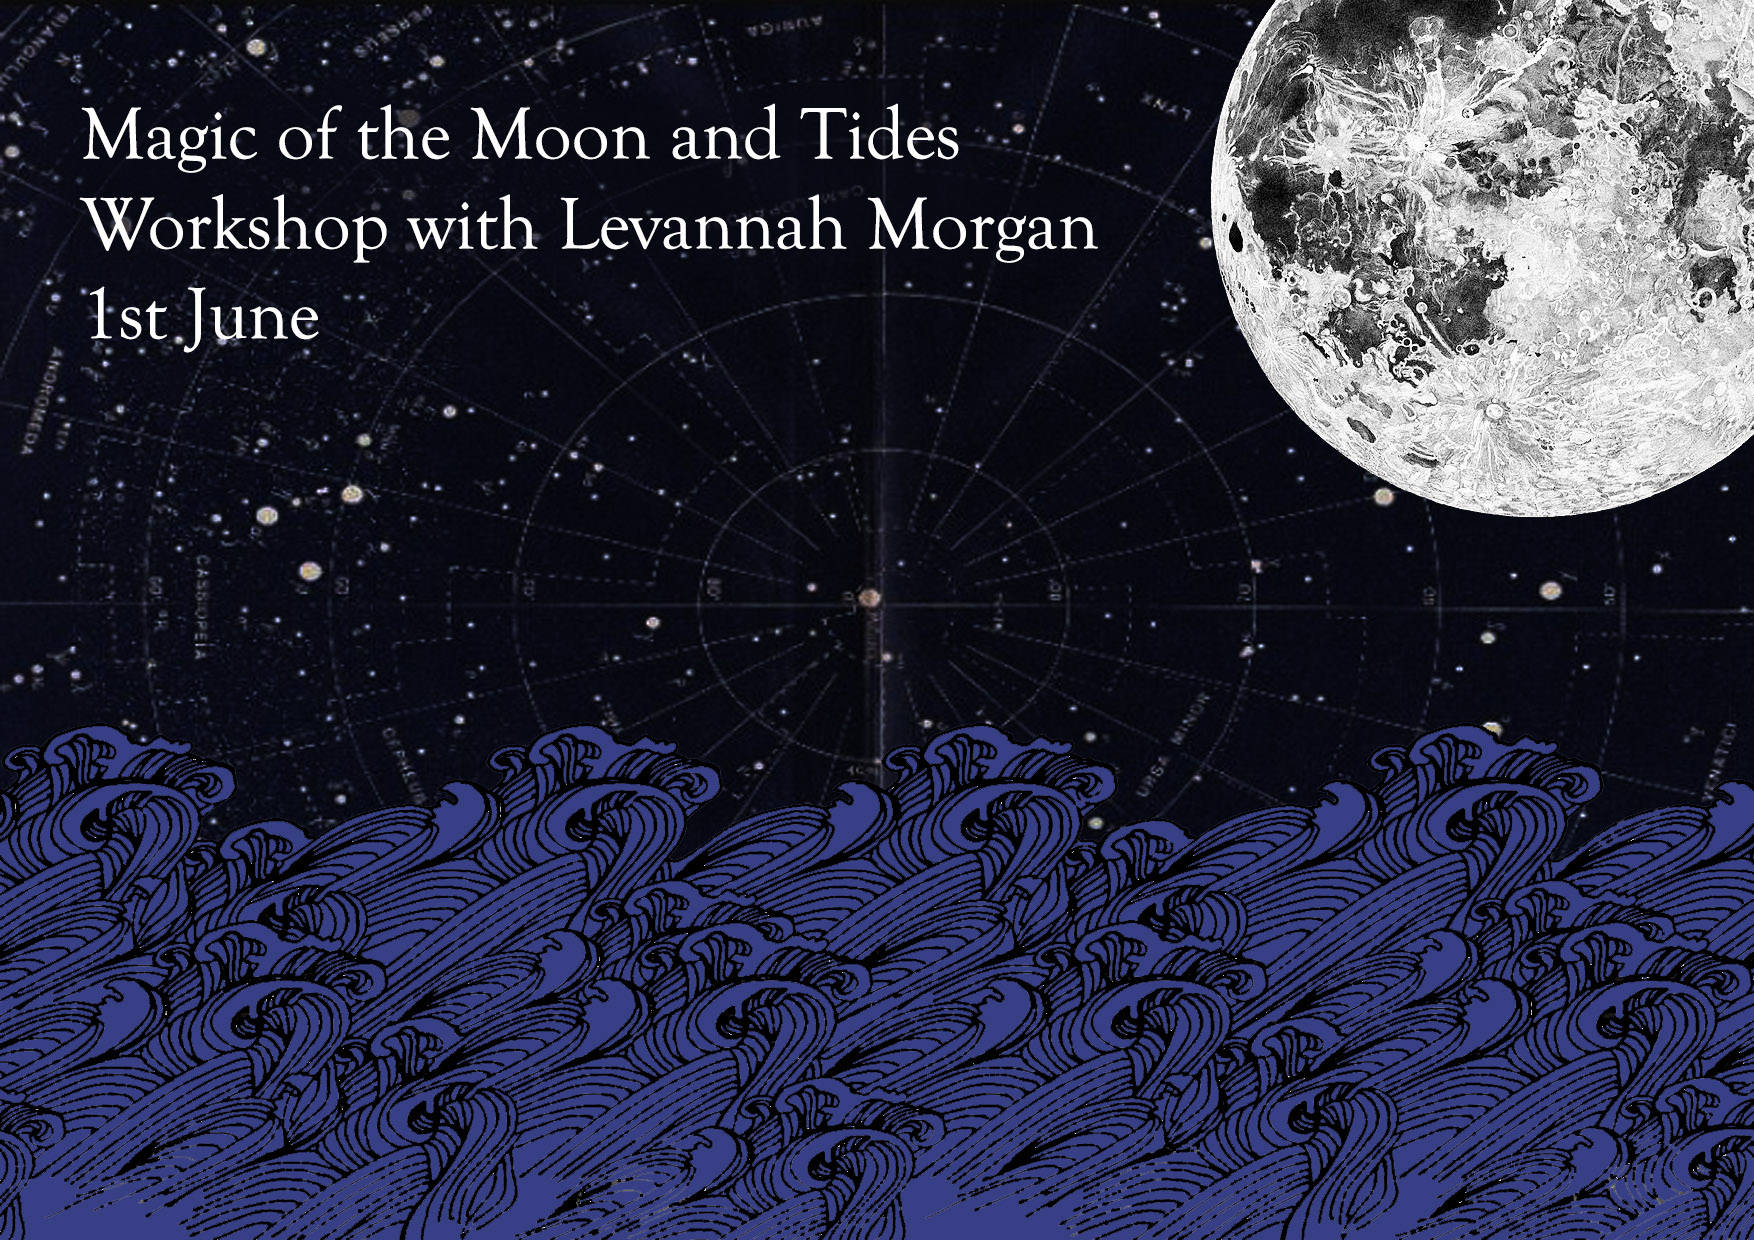 Magic of the Moon and Tides – workshop with Levannah Morgan.